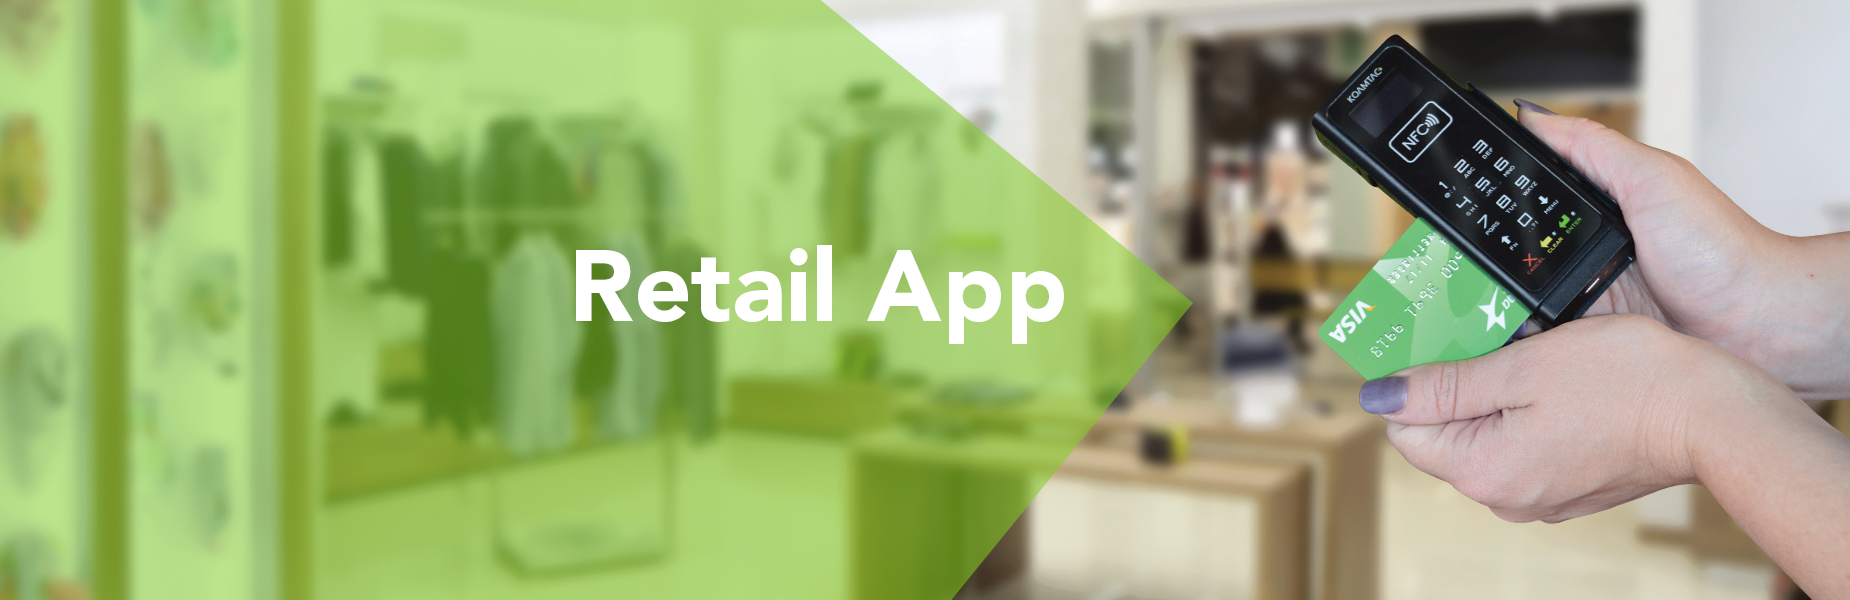 Retail App KOAMTACON